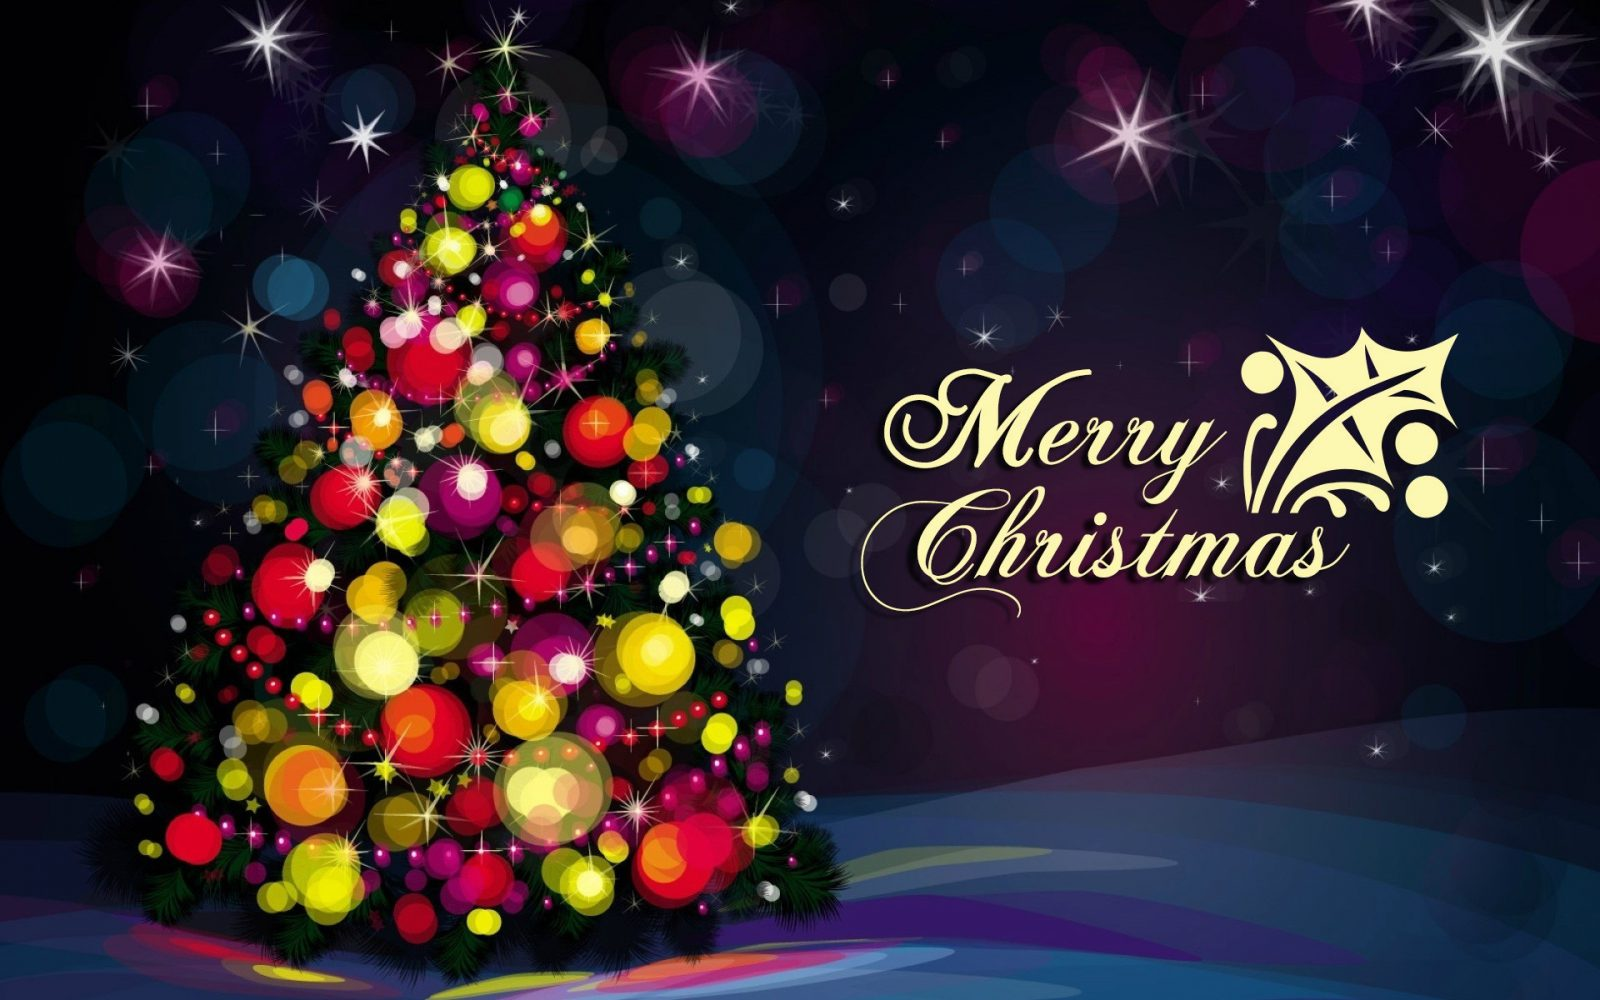 Merry Christmas Wishes for Lover